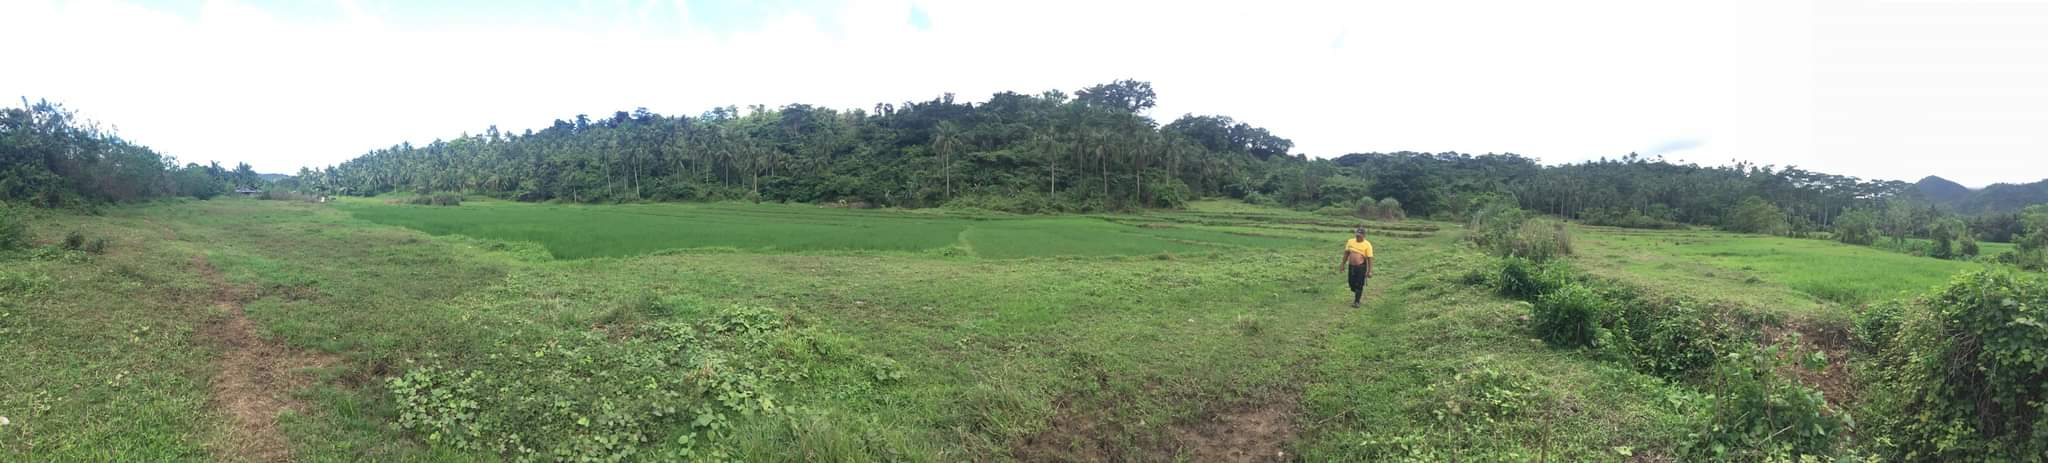 20 hectares lot for sale